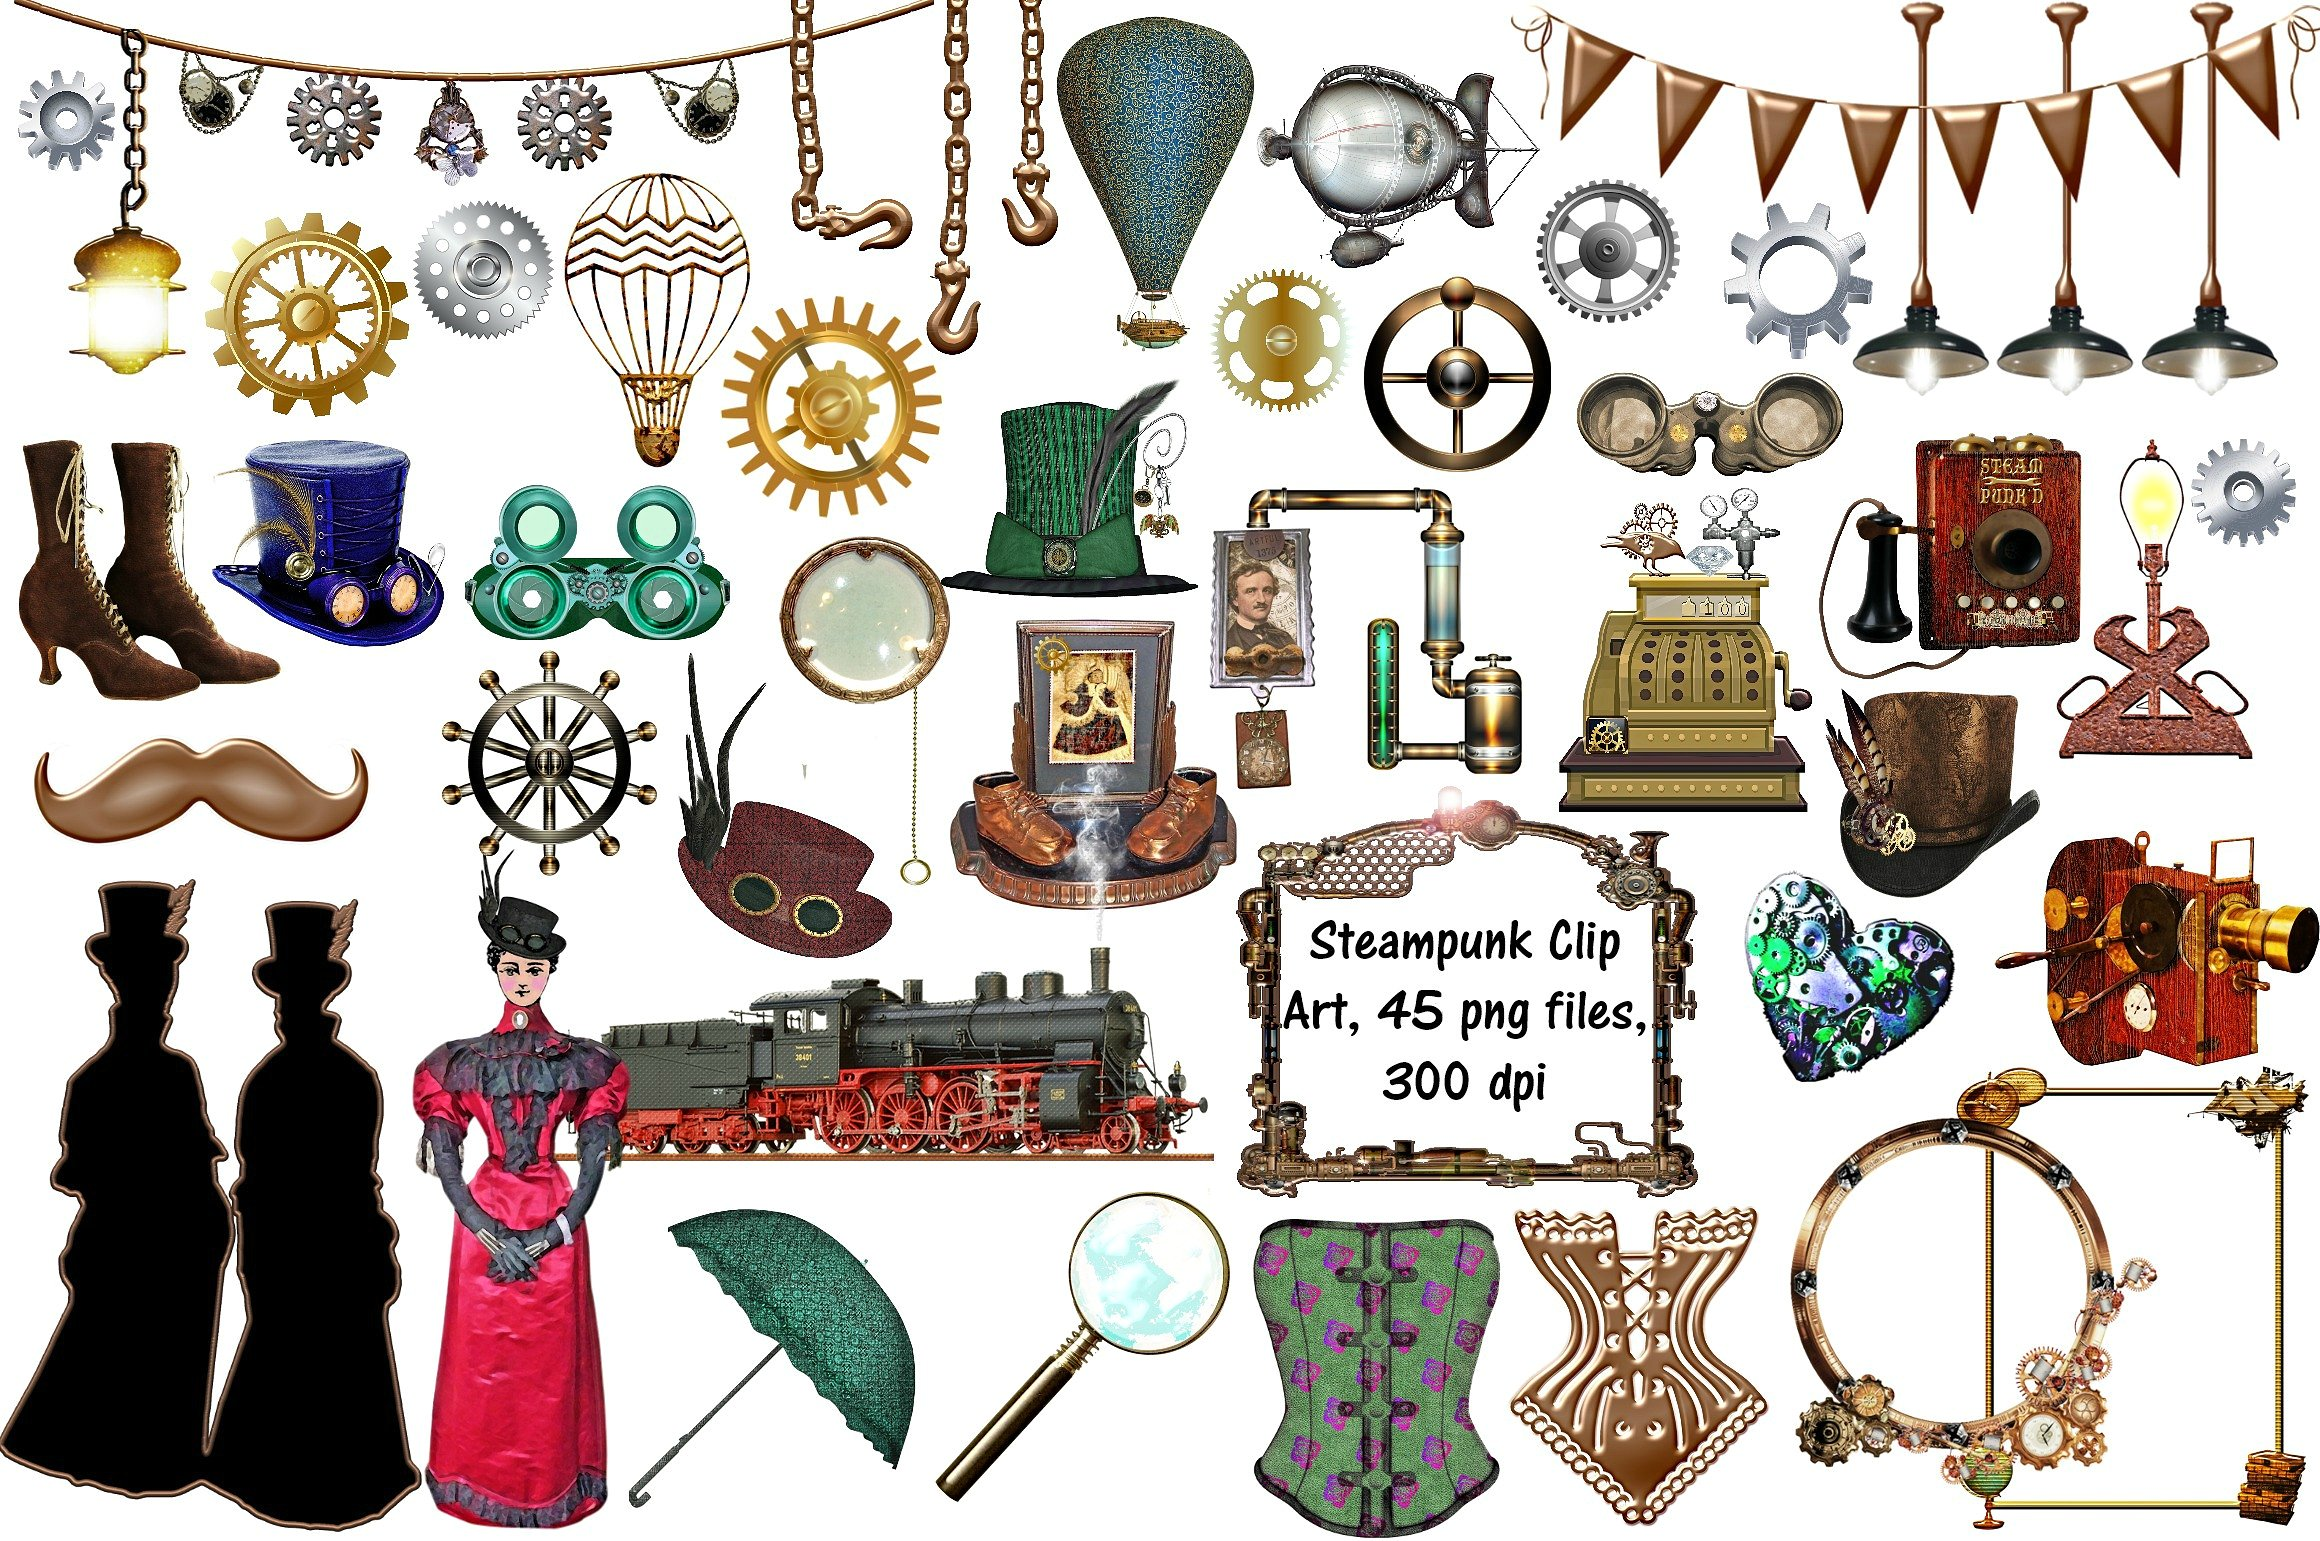 Steampunk clipart. Clip art png files